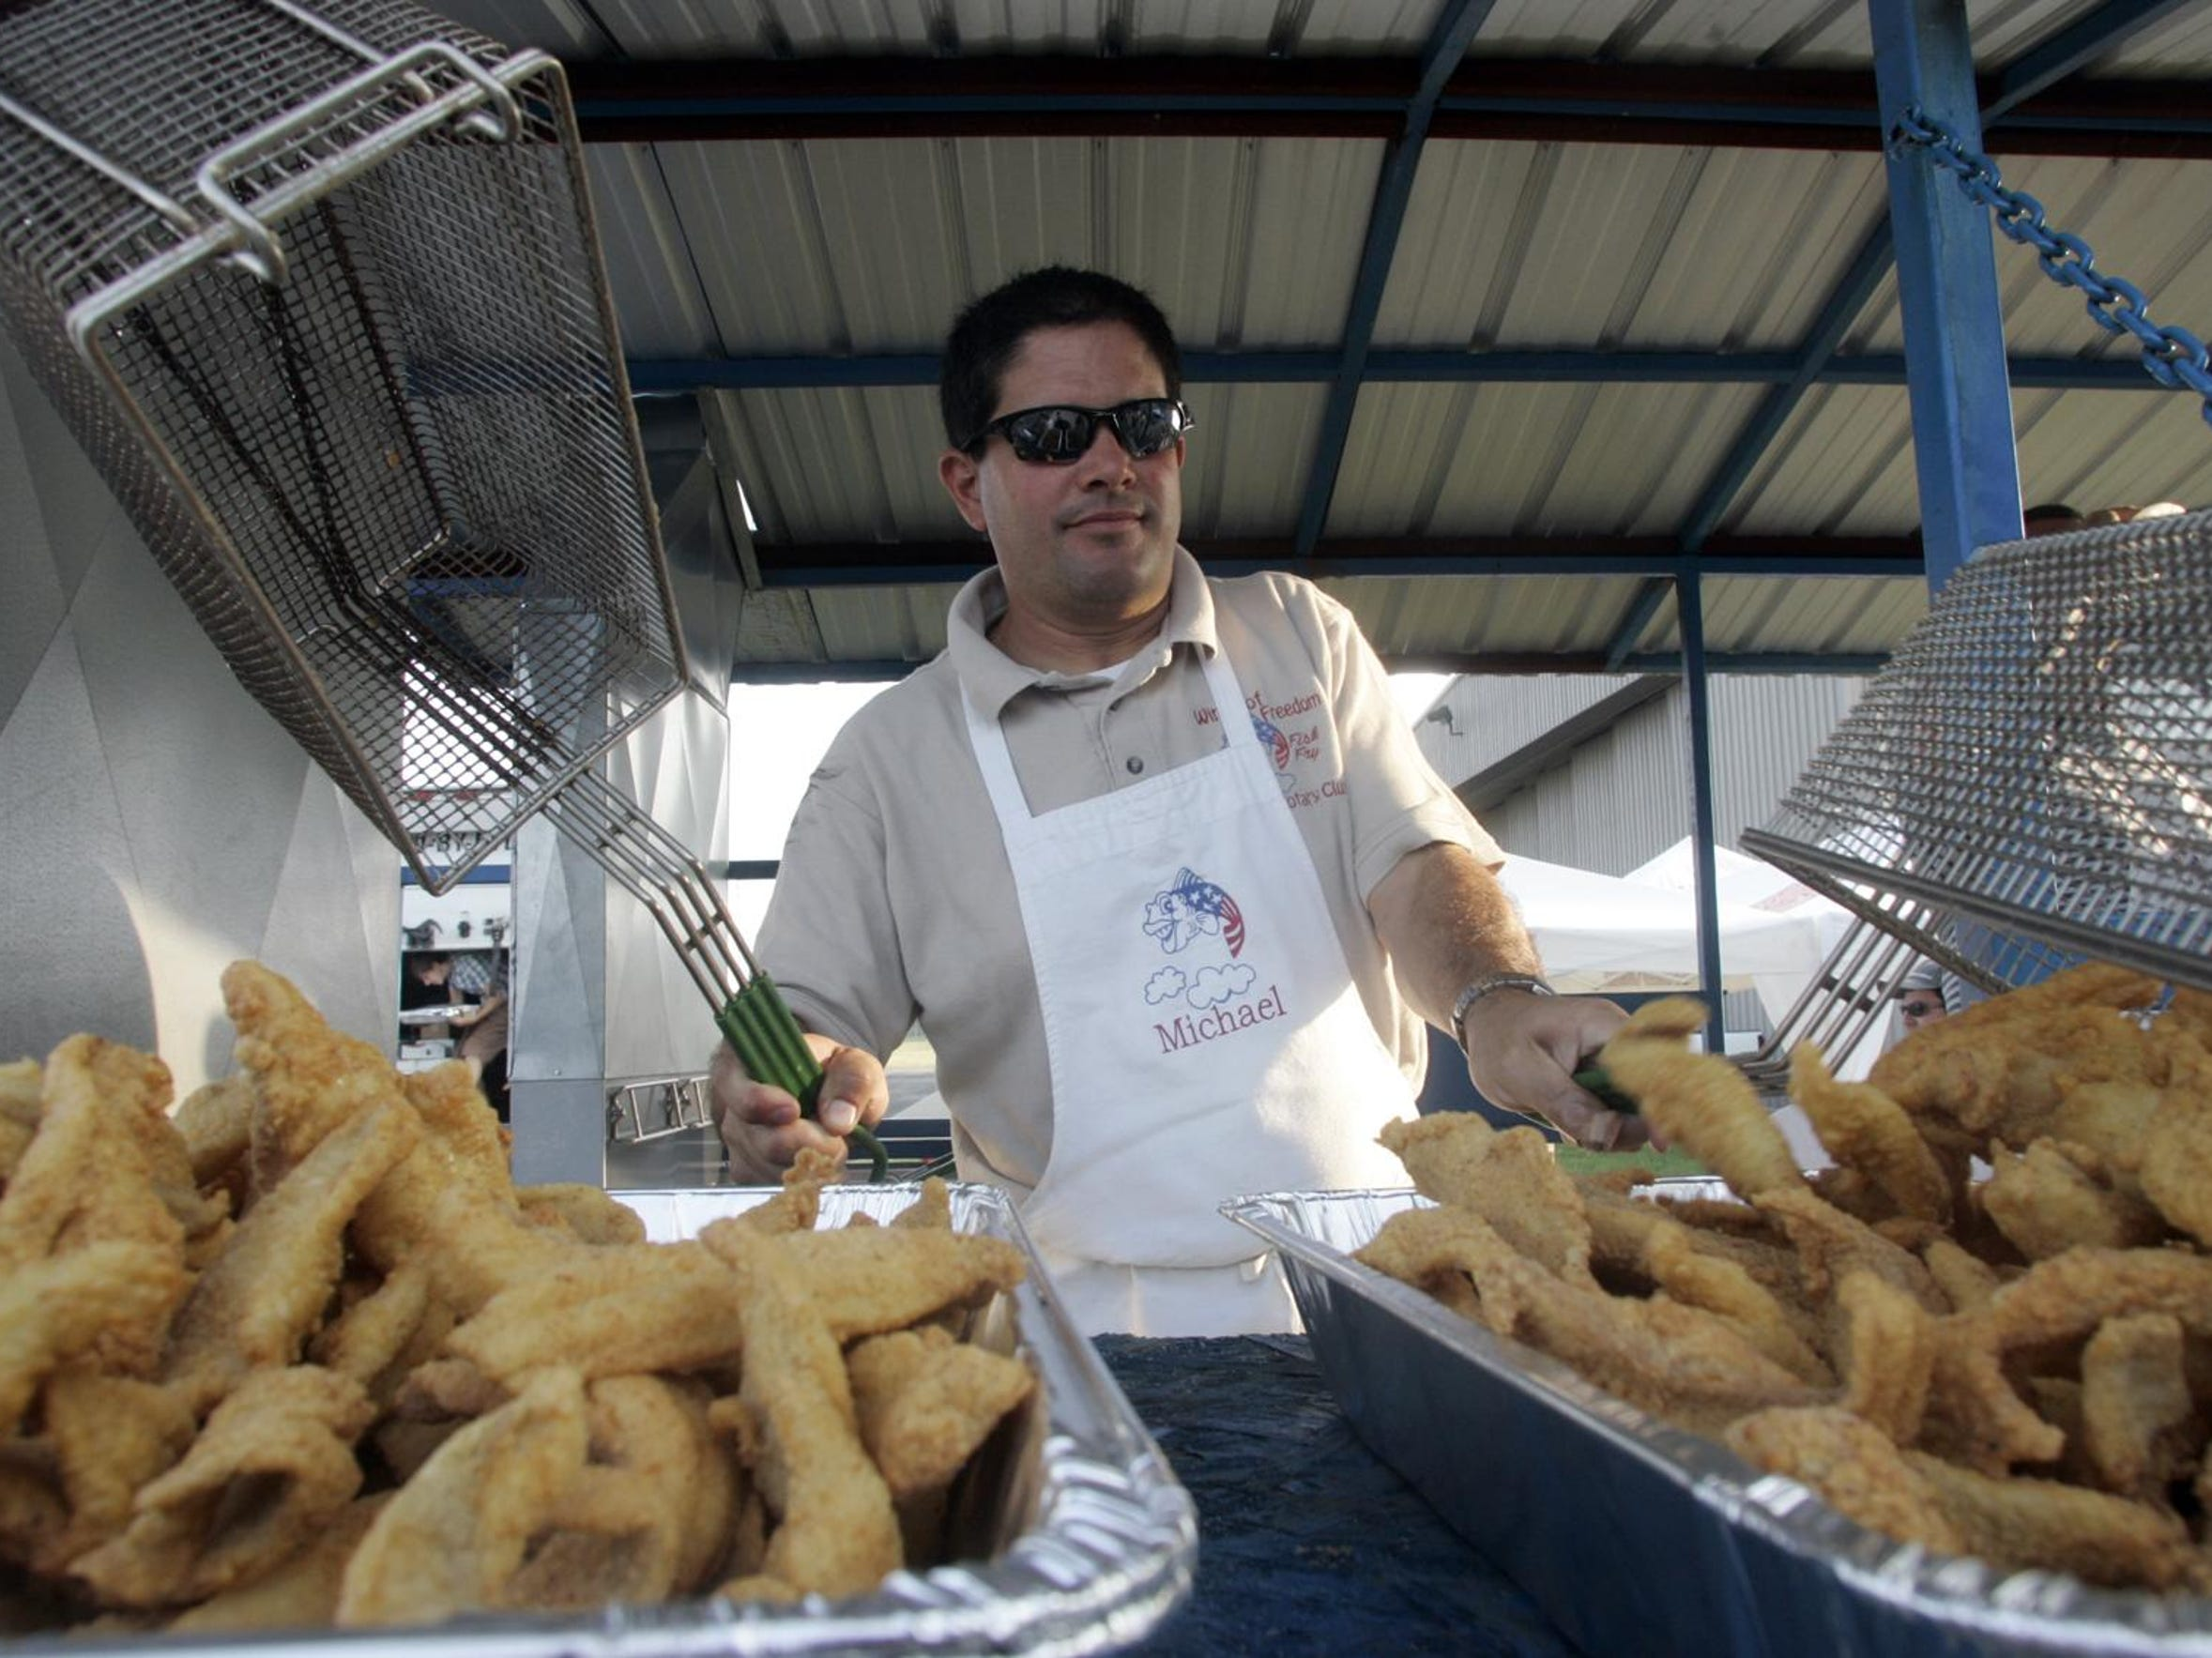 Michael Intorcia fills a tray with fried fish at a